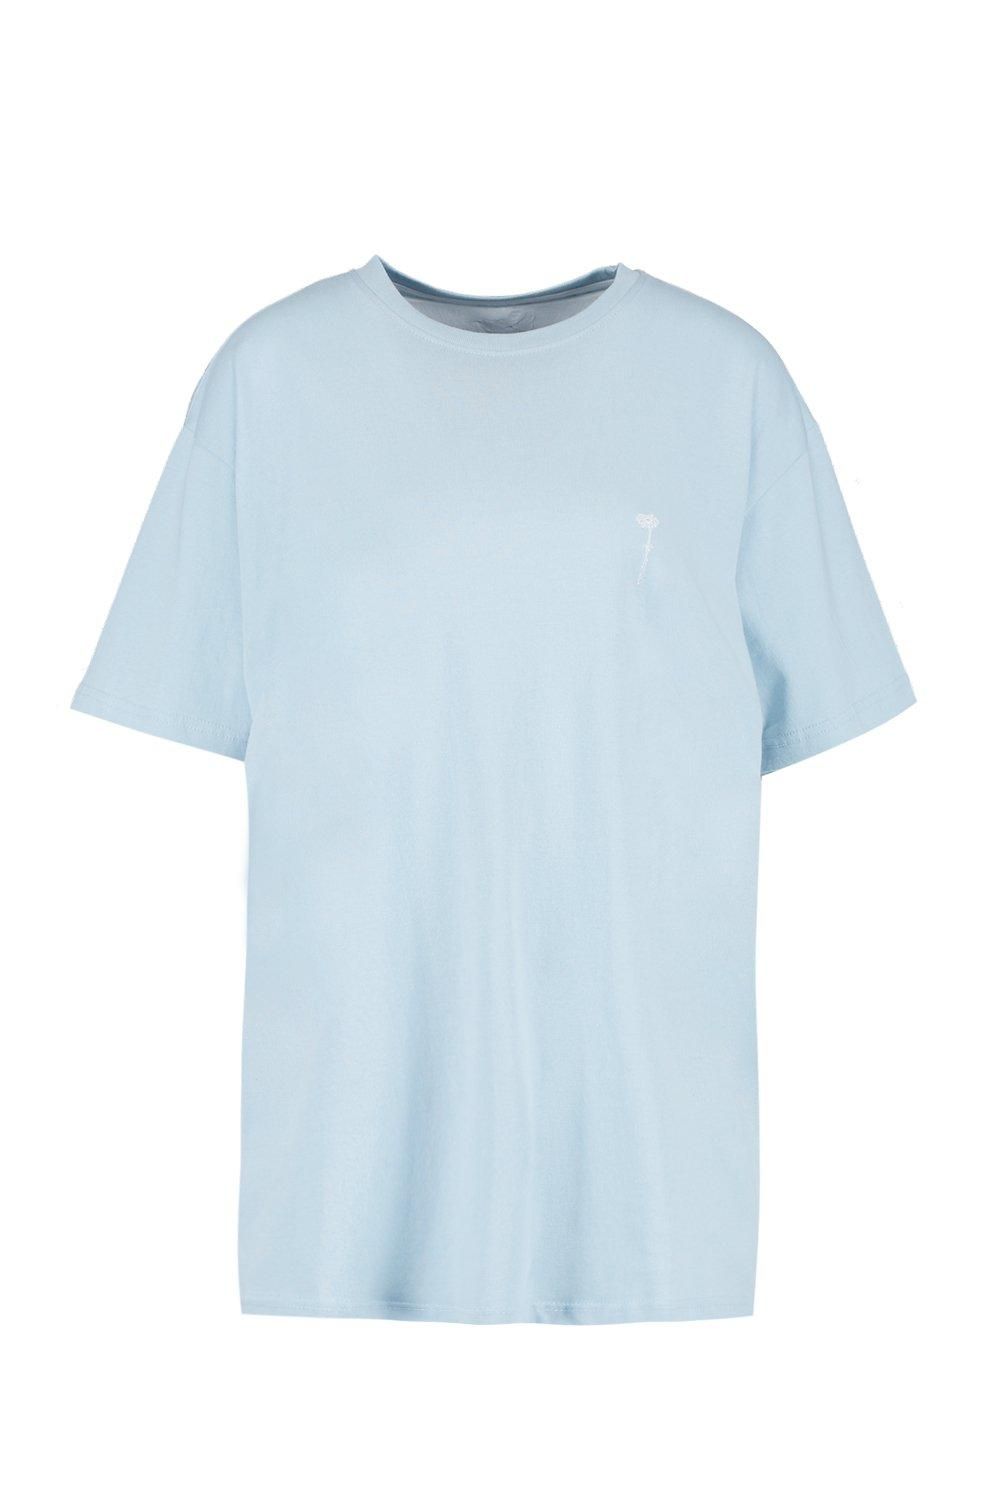 "boohooMAN pale blue Pride """"Love is"""" Back Print Loose Fit T Shirt"